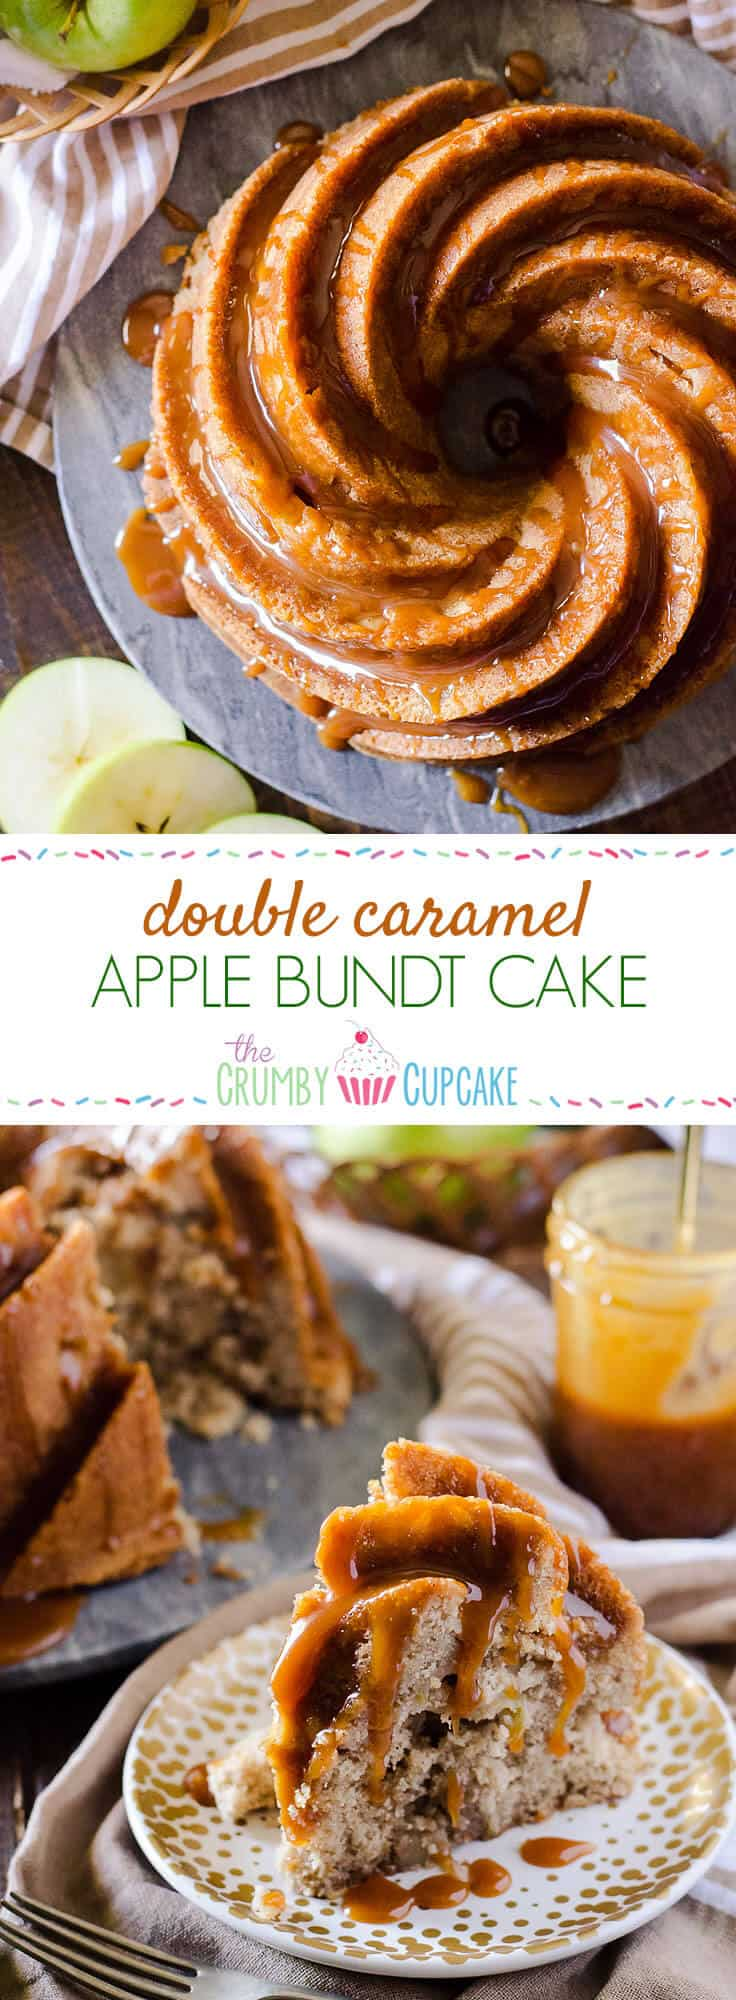 This Double Caramel Apple Bundt Cake isn't just boasting - moist caramel cake, loaded with apples & a little spice, then doused in even more caramel sauce!